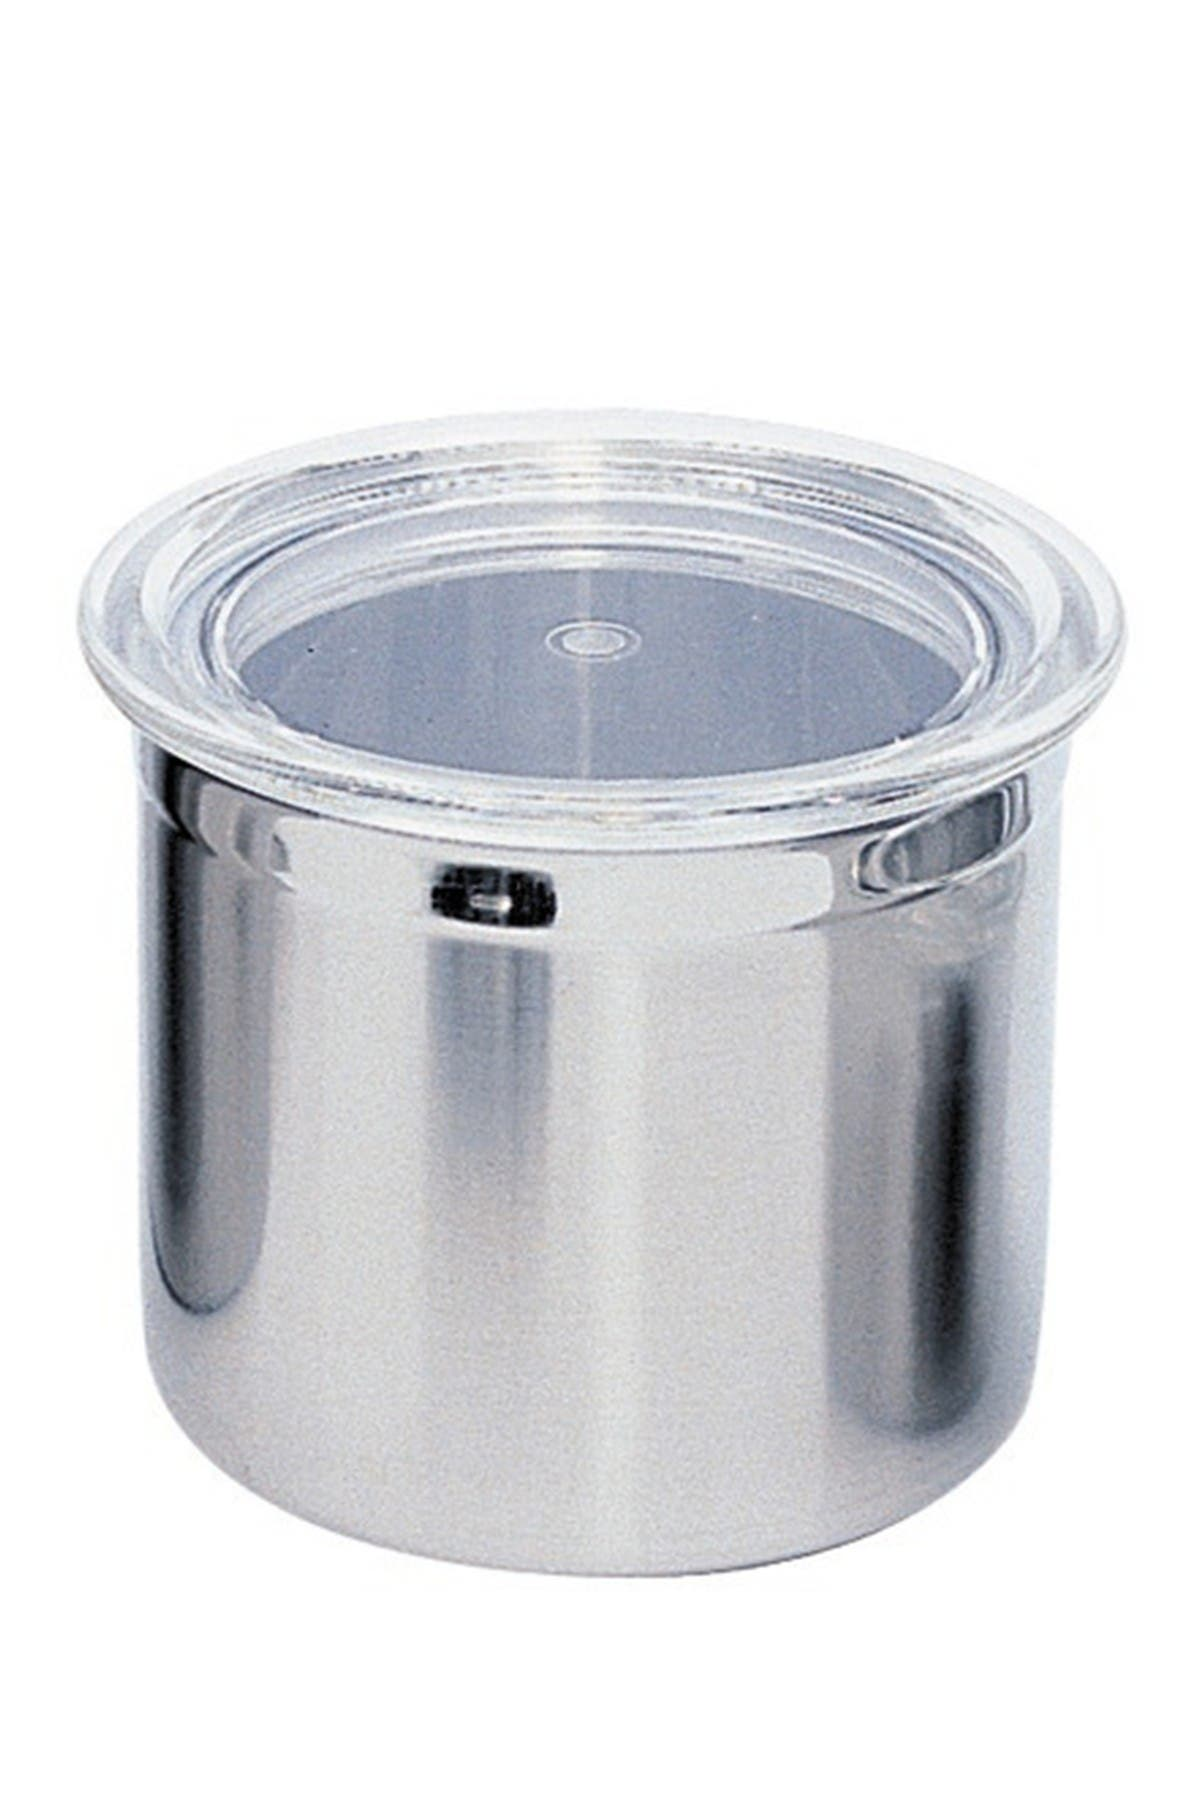 Image of BergHOFF 1.75 Cup Capacity Lid Stainless Steel Canister